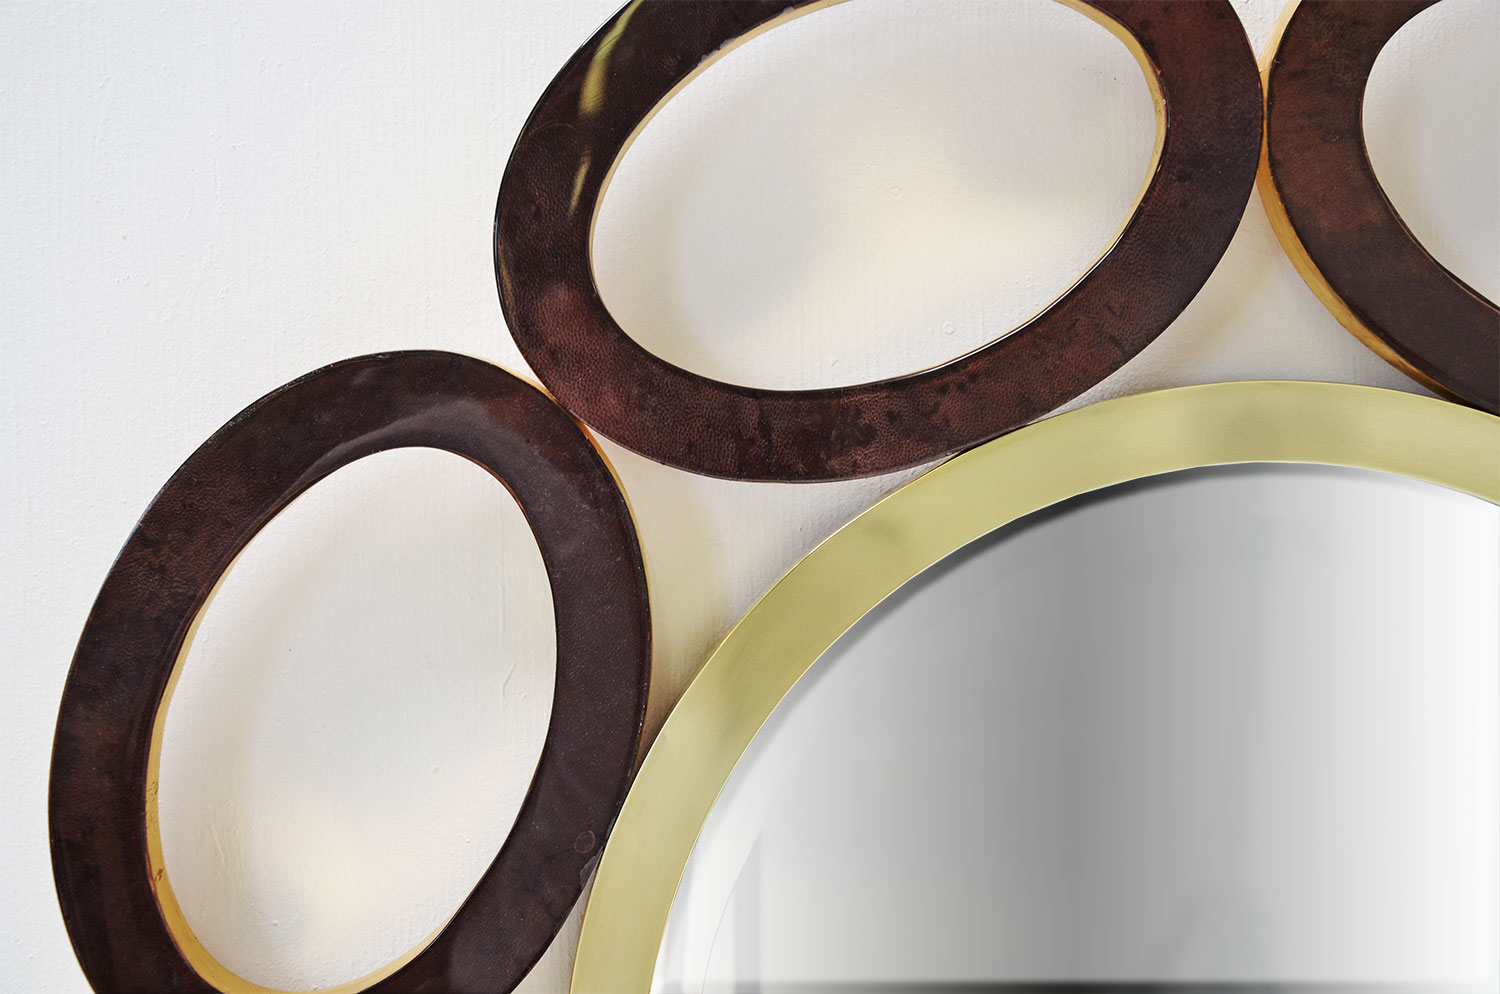 Elliptical Mirror - Goatskin / Gold Leaf 3